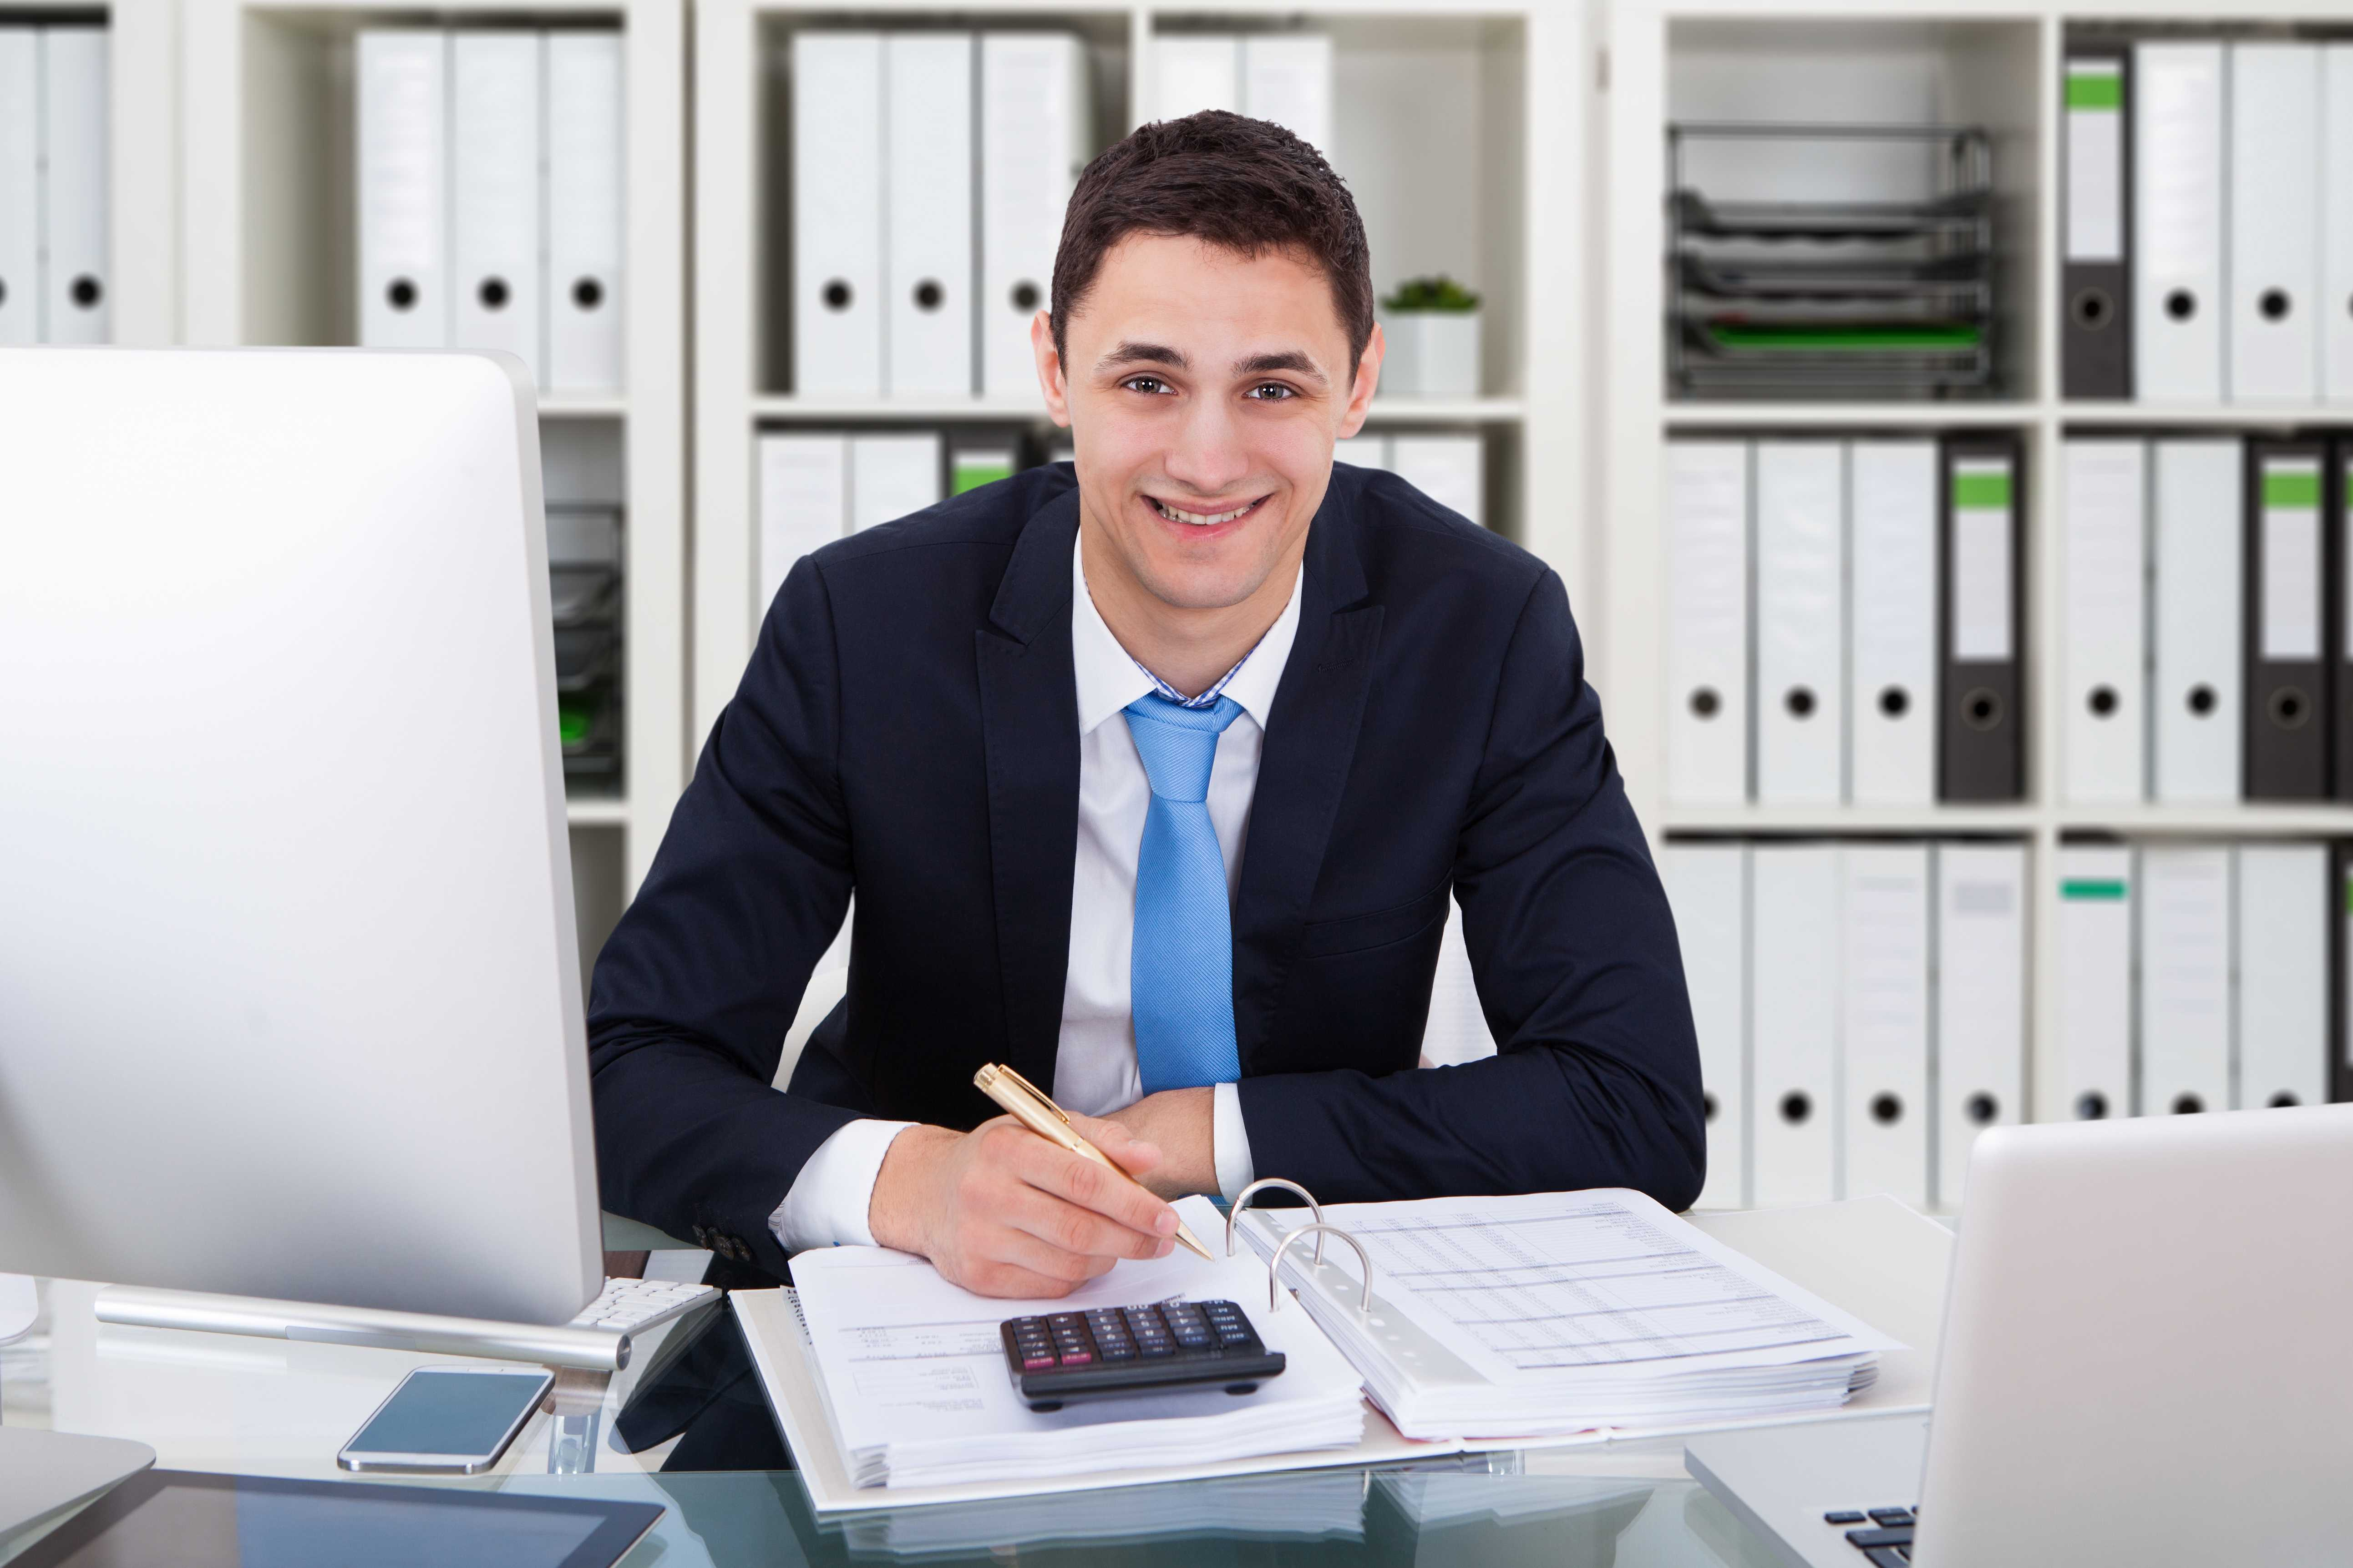 Top 10 Skills Needed to work in Accounting & Payroll